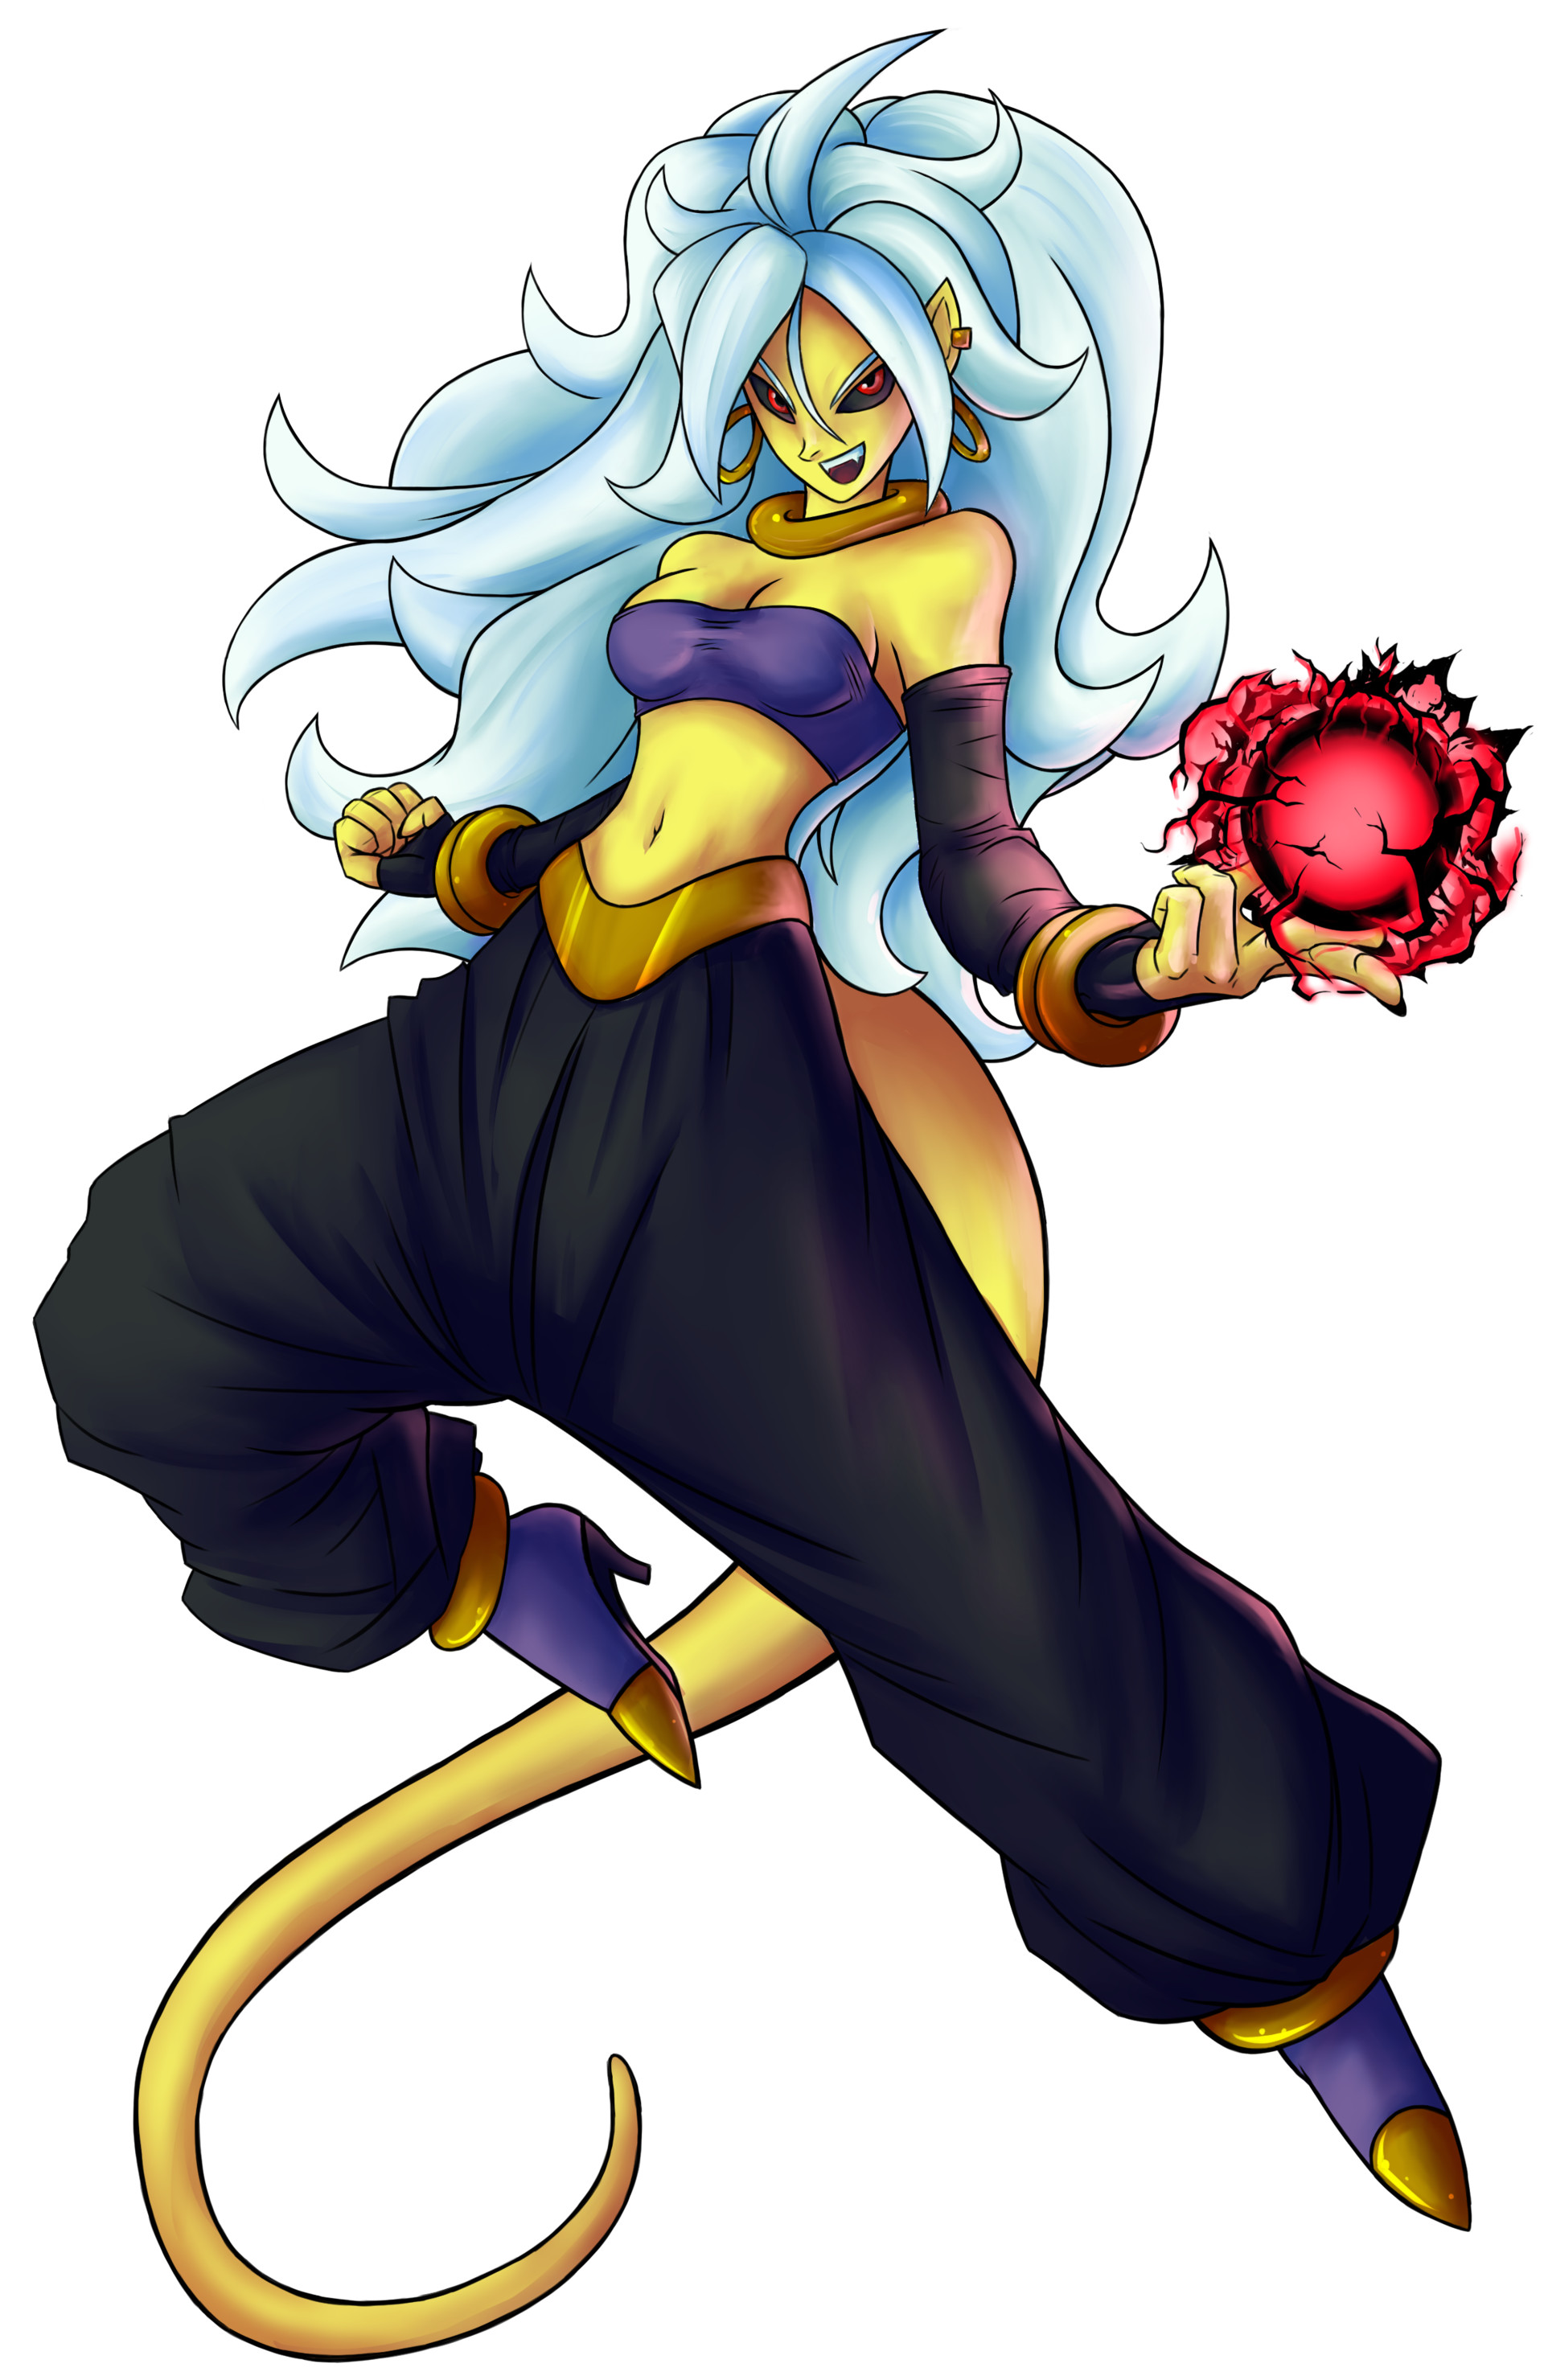 Lukas hagg android 21